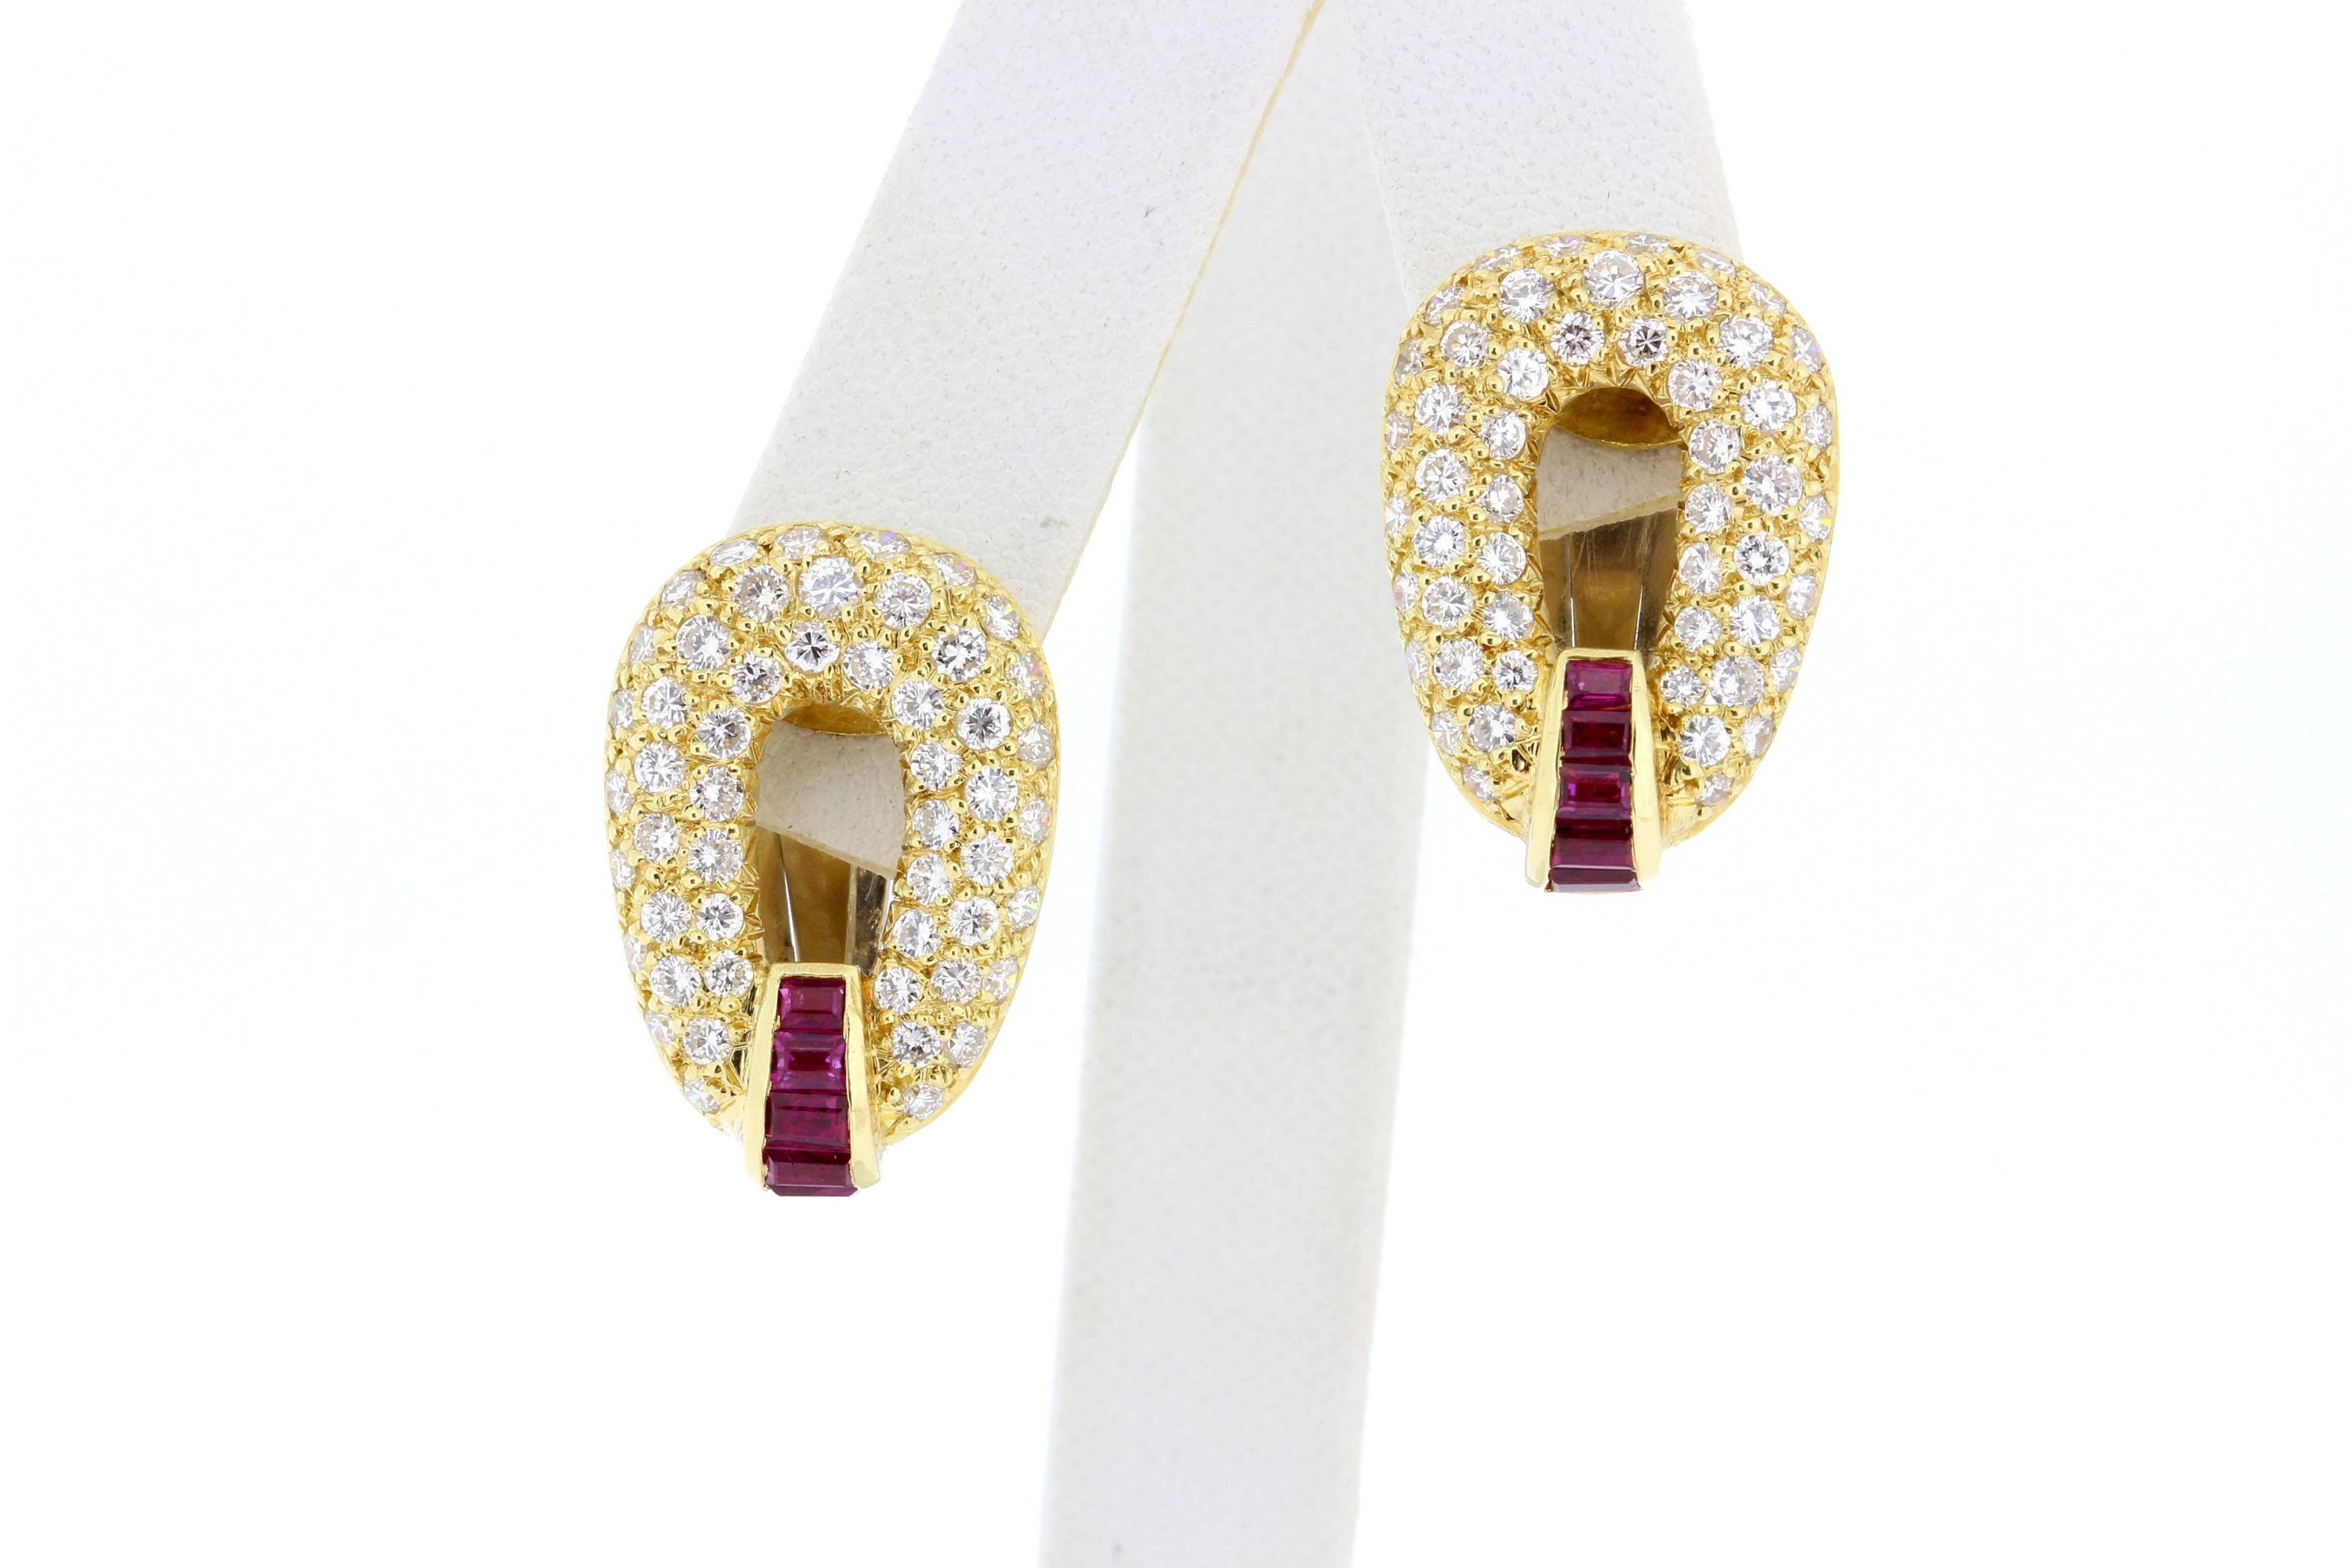 4fcc4eb73 18K Yellow Gold Citrine and Blue Topaz Oval Earrings Virginia Capri |  Products in 2019